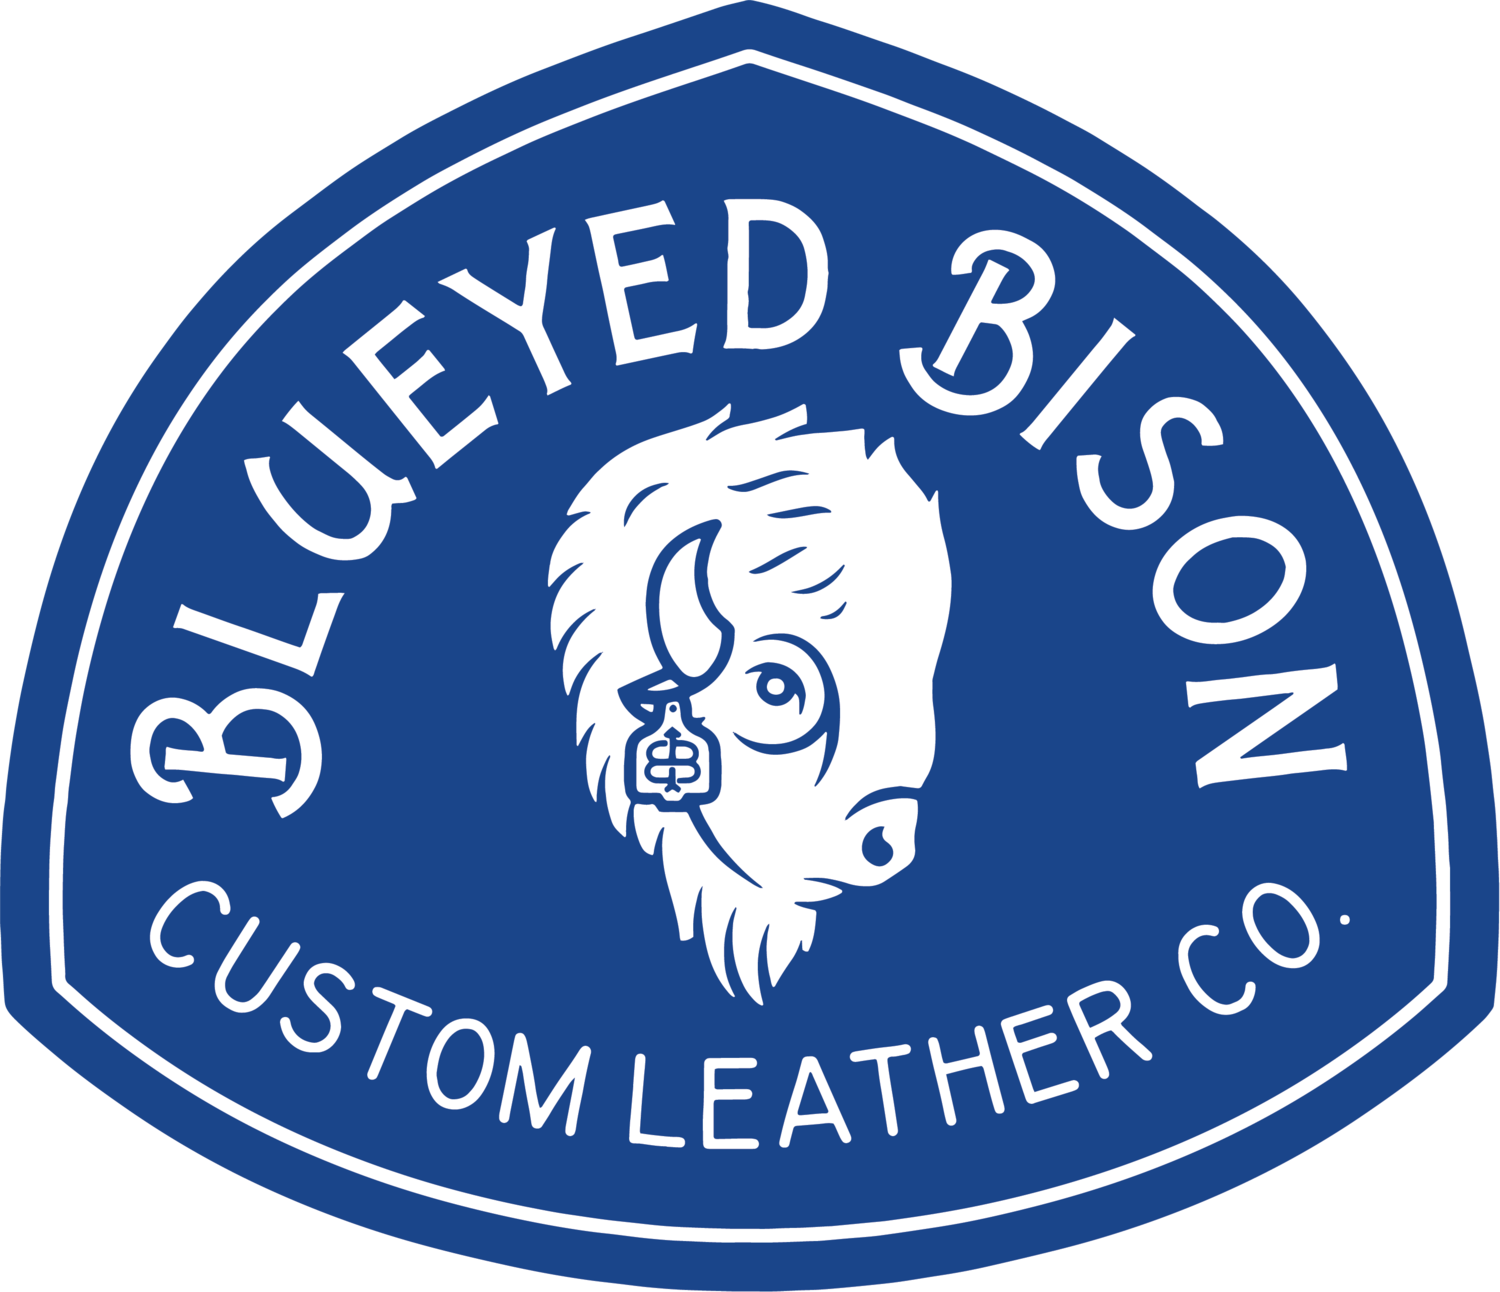 BluEyed Bison Custom Leather Co.